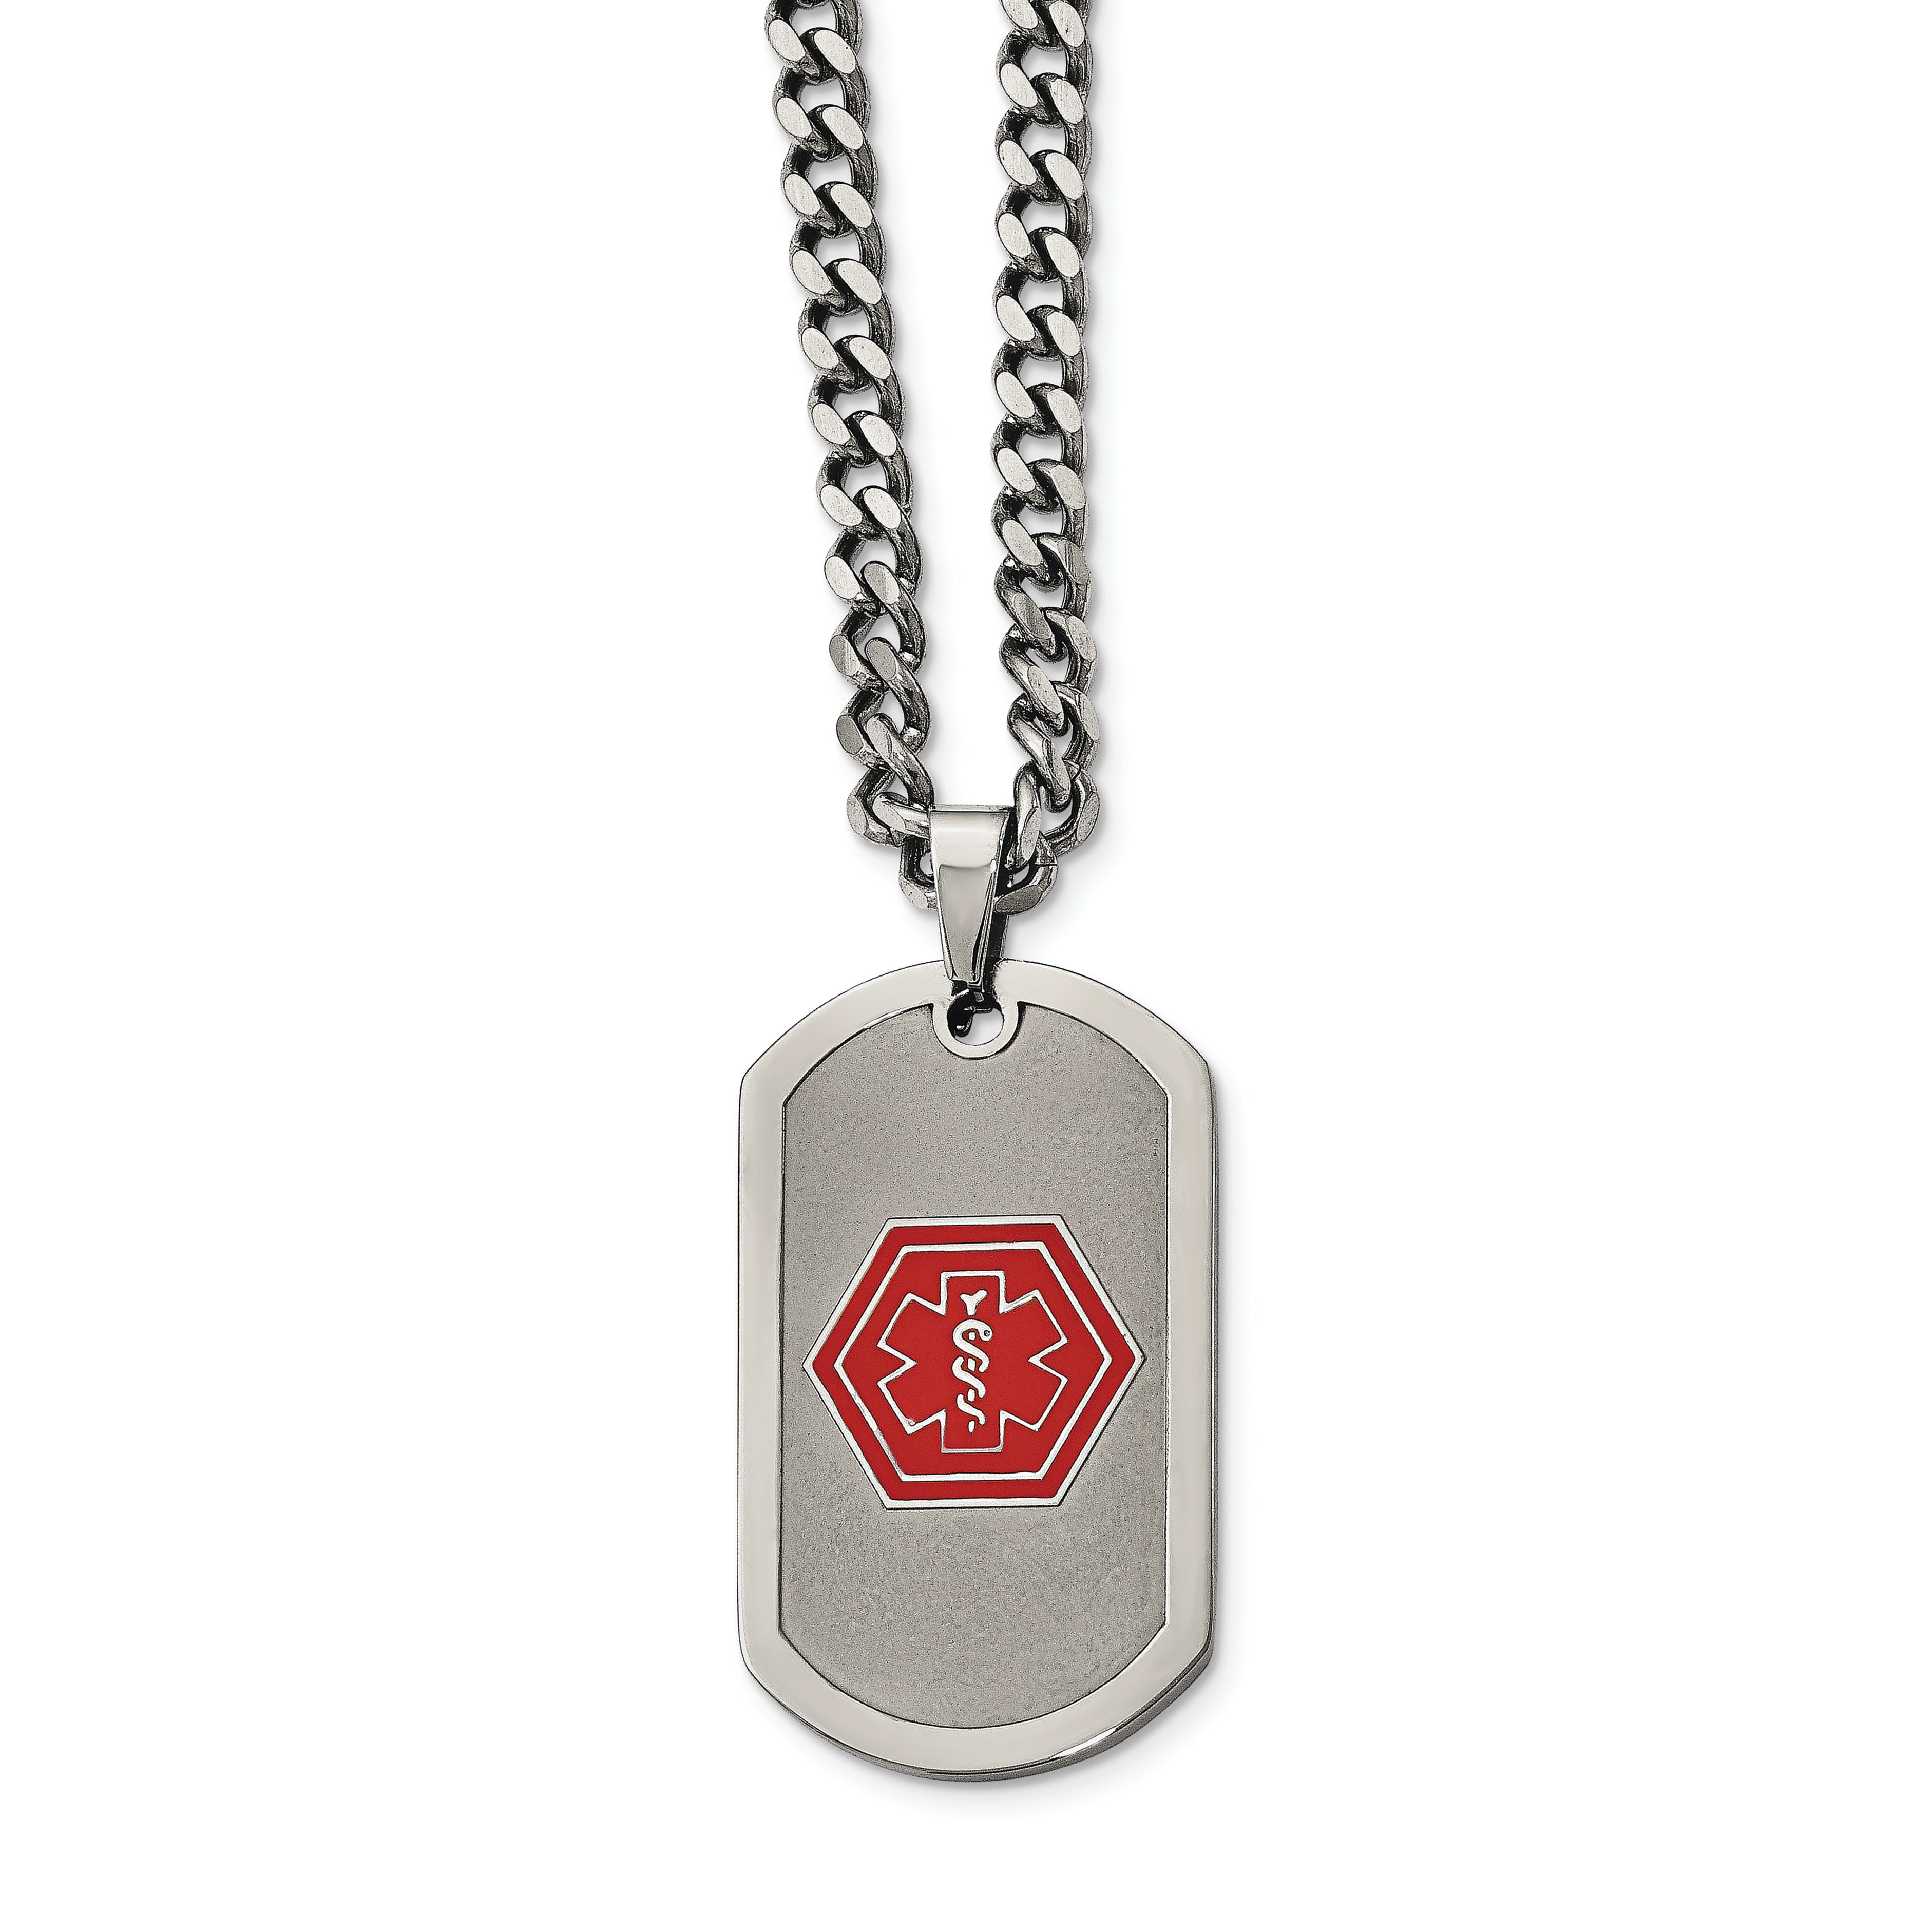 Medical Alert ID Curb Chain Dog Tag Necklace in Stainless Steel